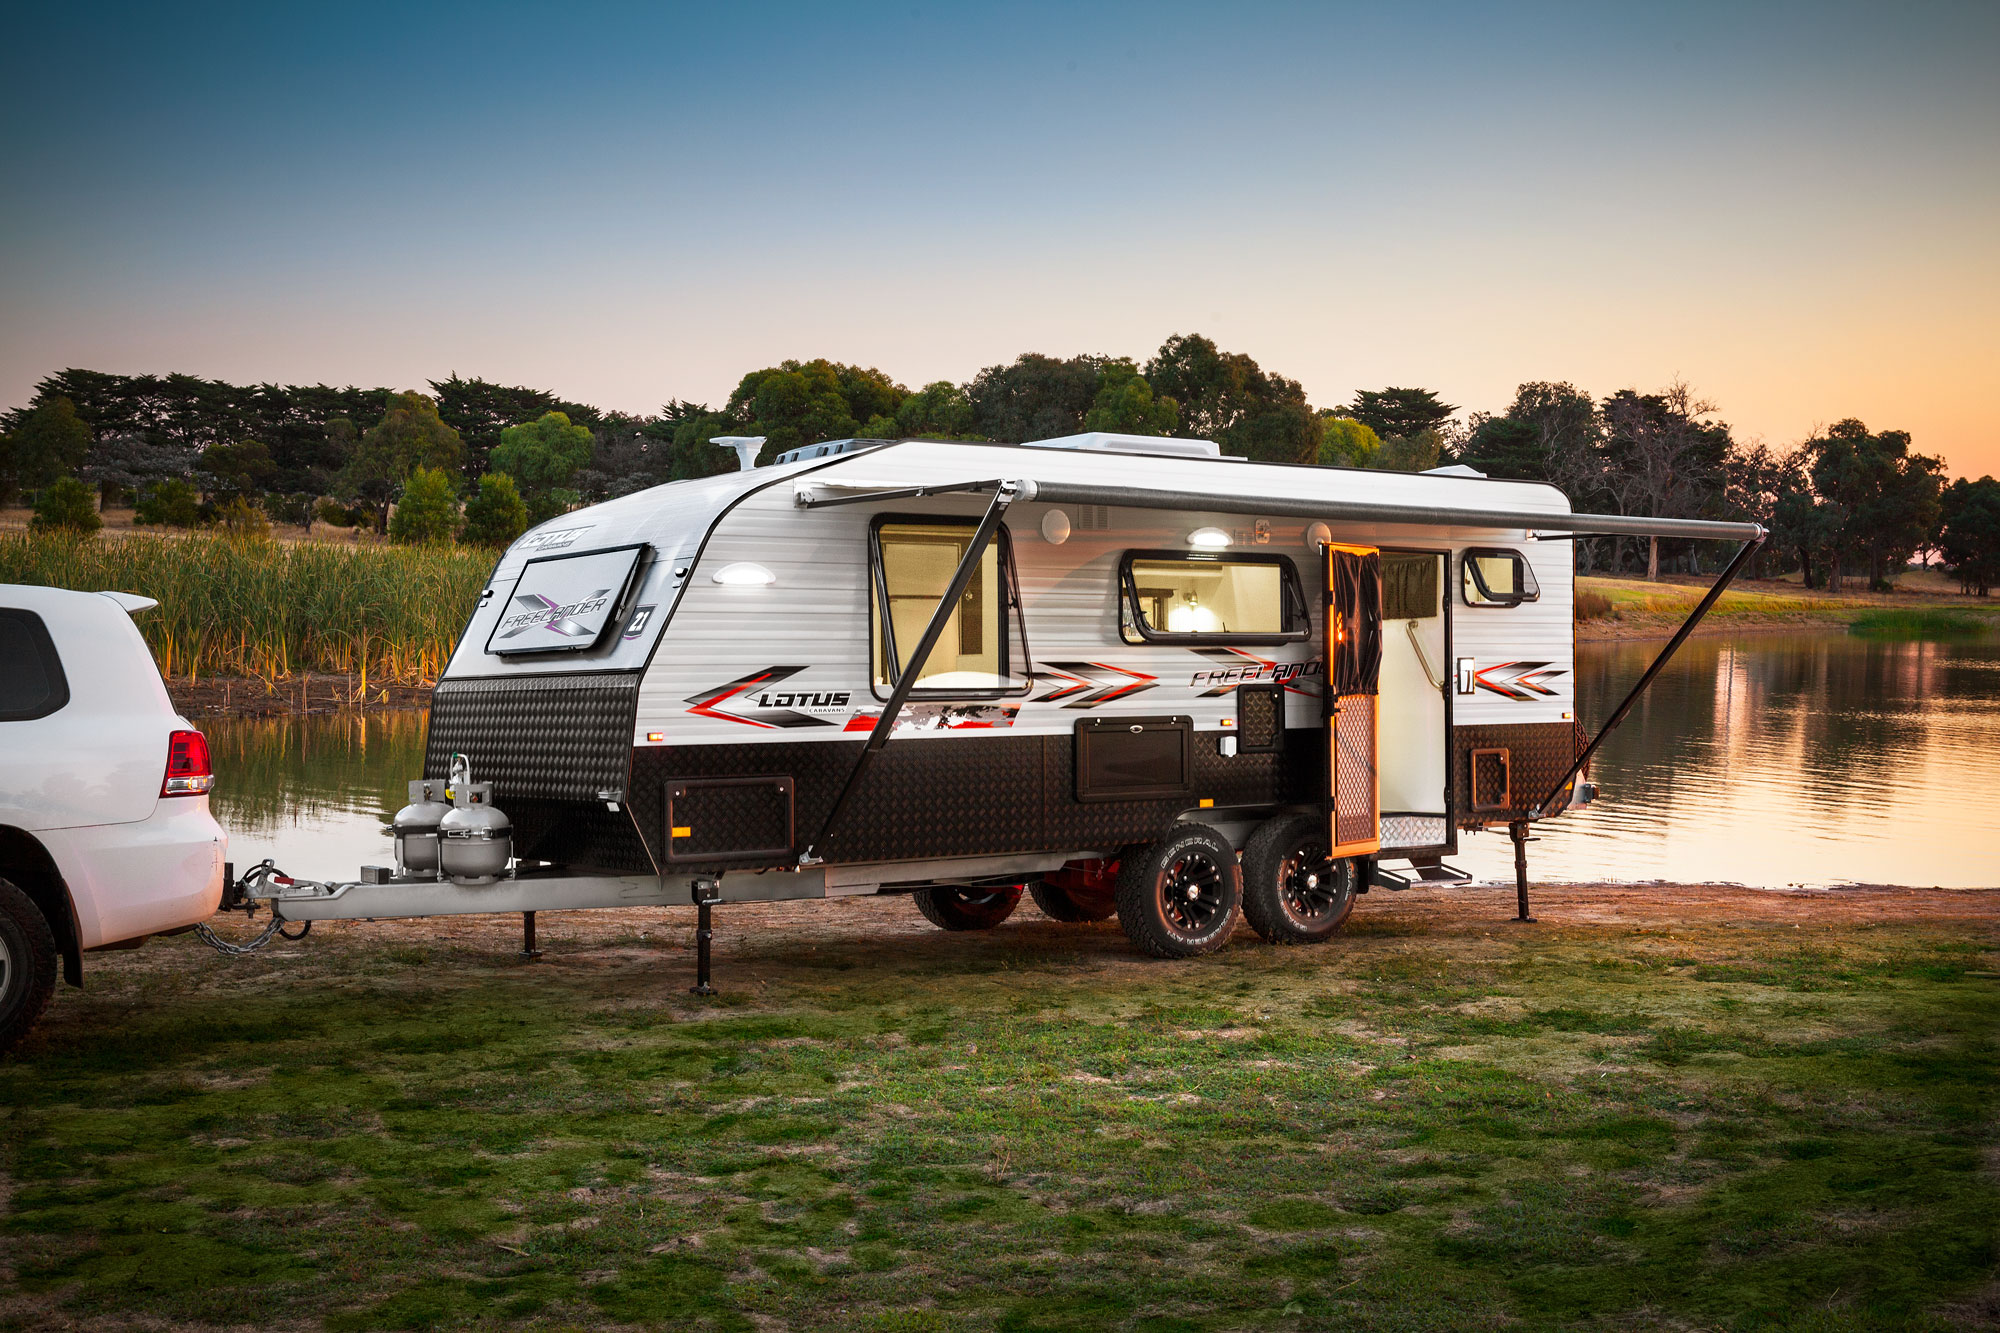 Awesome This Ones For Those Bitten By The Travel Bug But Still Prefer To Stay On The Roads China Auto Manufacturers CAM Has Officially Launched The CAM Caravan Here In Malaysia With A Price Tag Of RM206,890 Ontheroad Inclusive Of